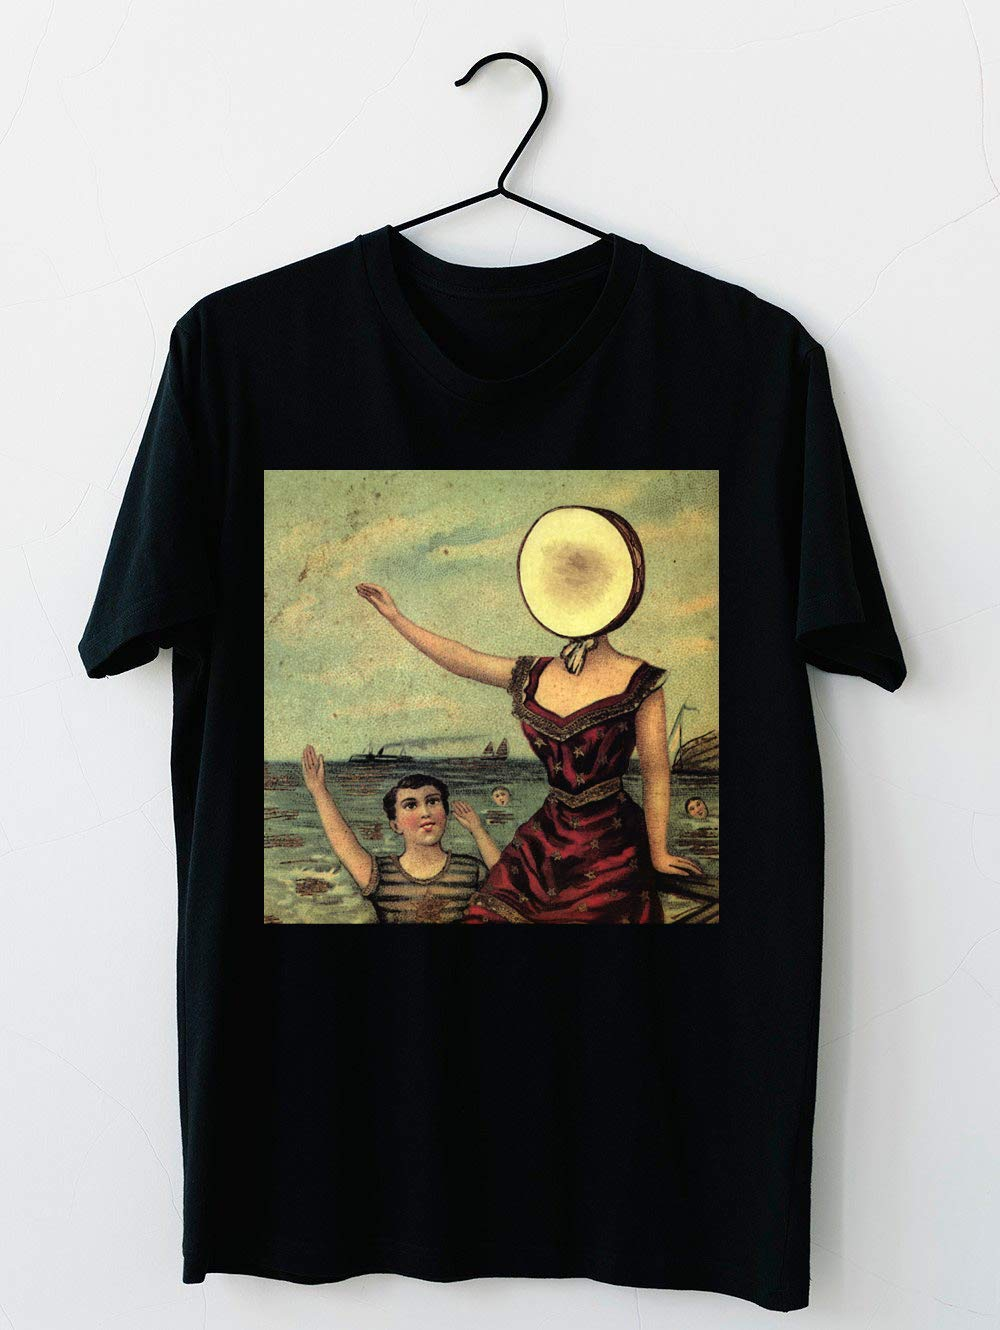 In The Aeroplane Over The Sea T Shirt For Unisex